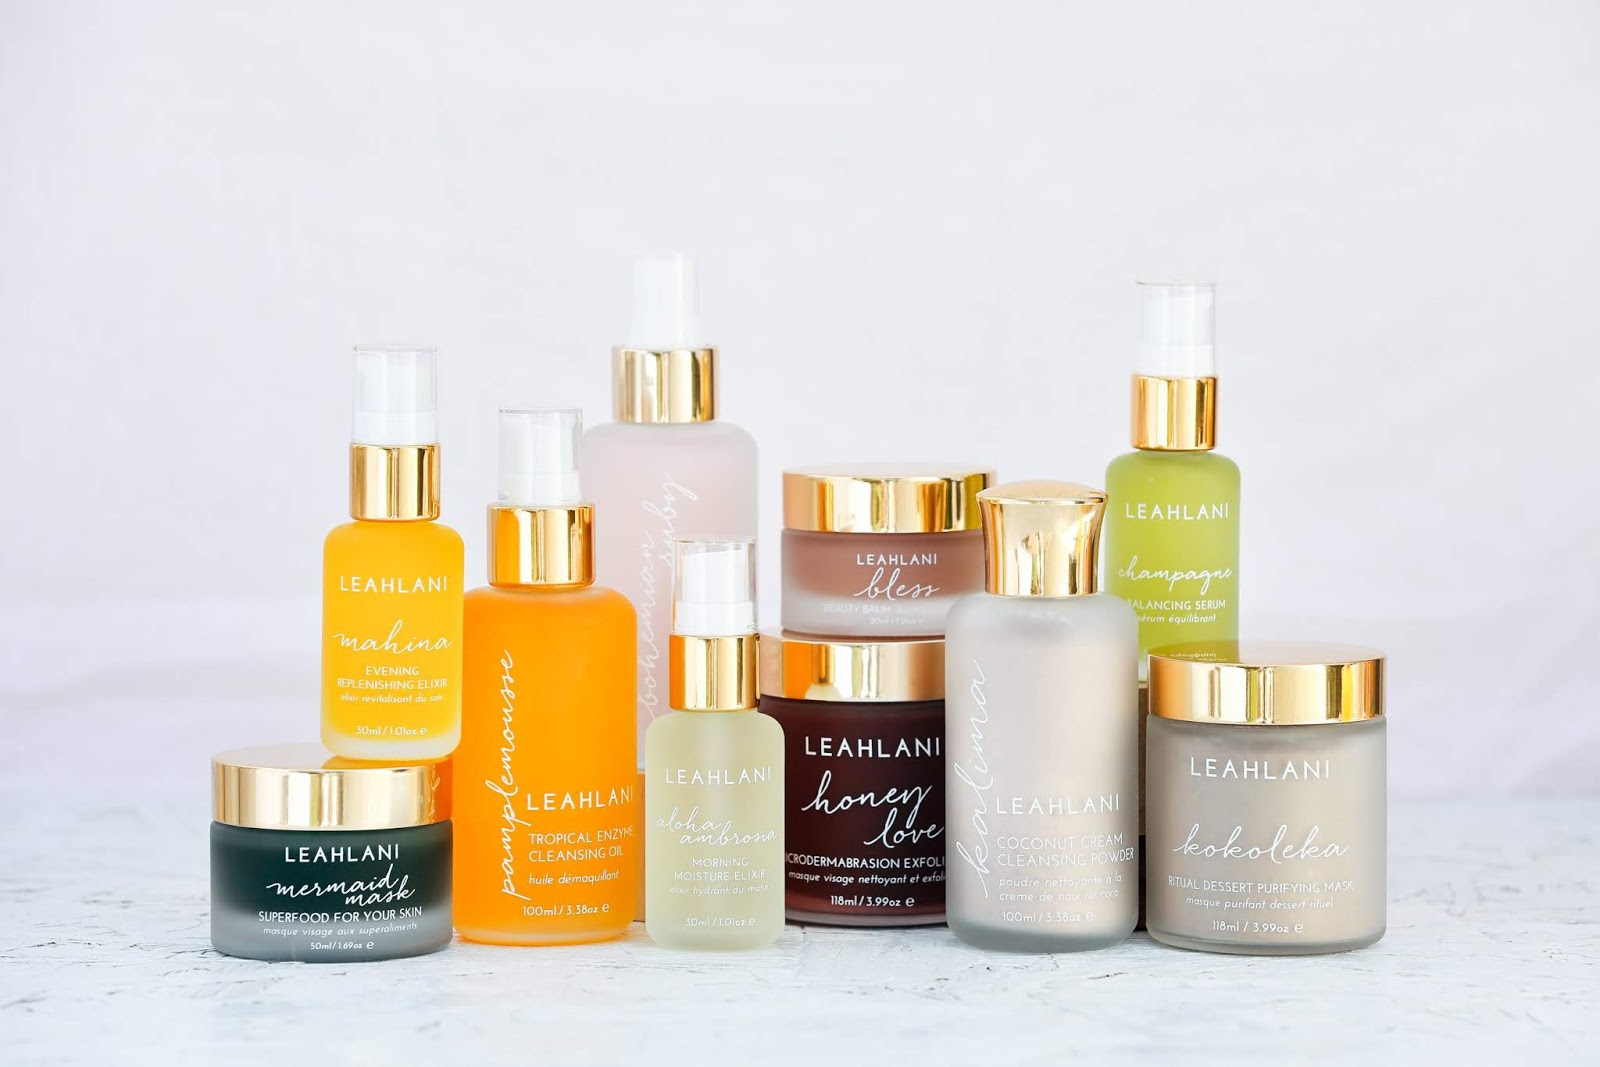 Leahlani Skincare NEW look, summer 2018